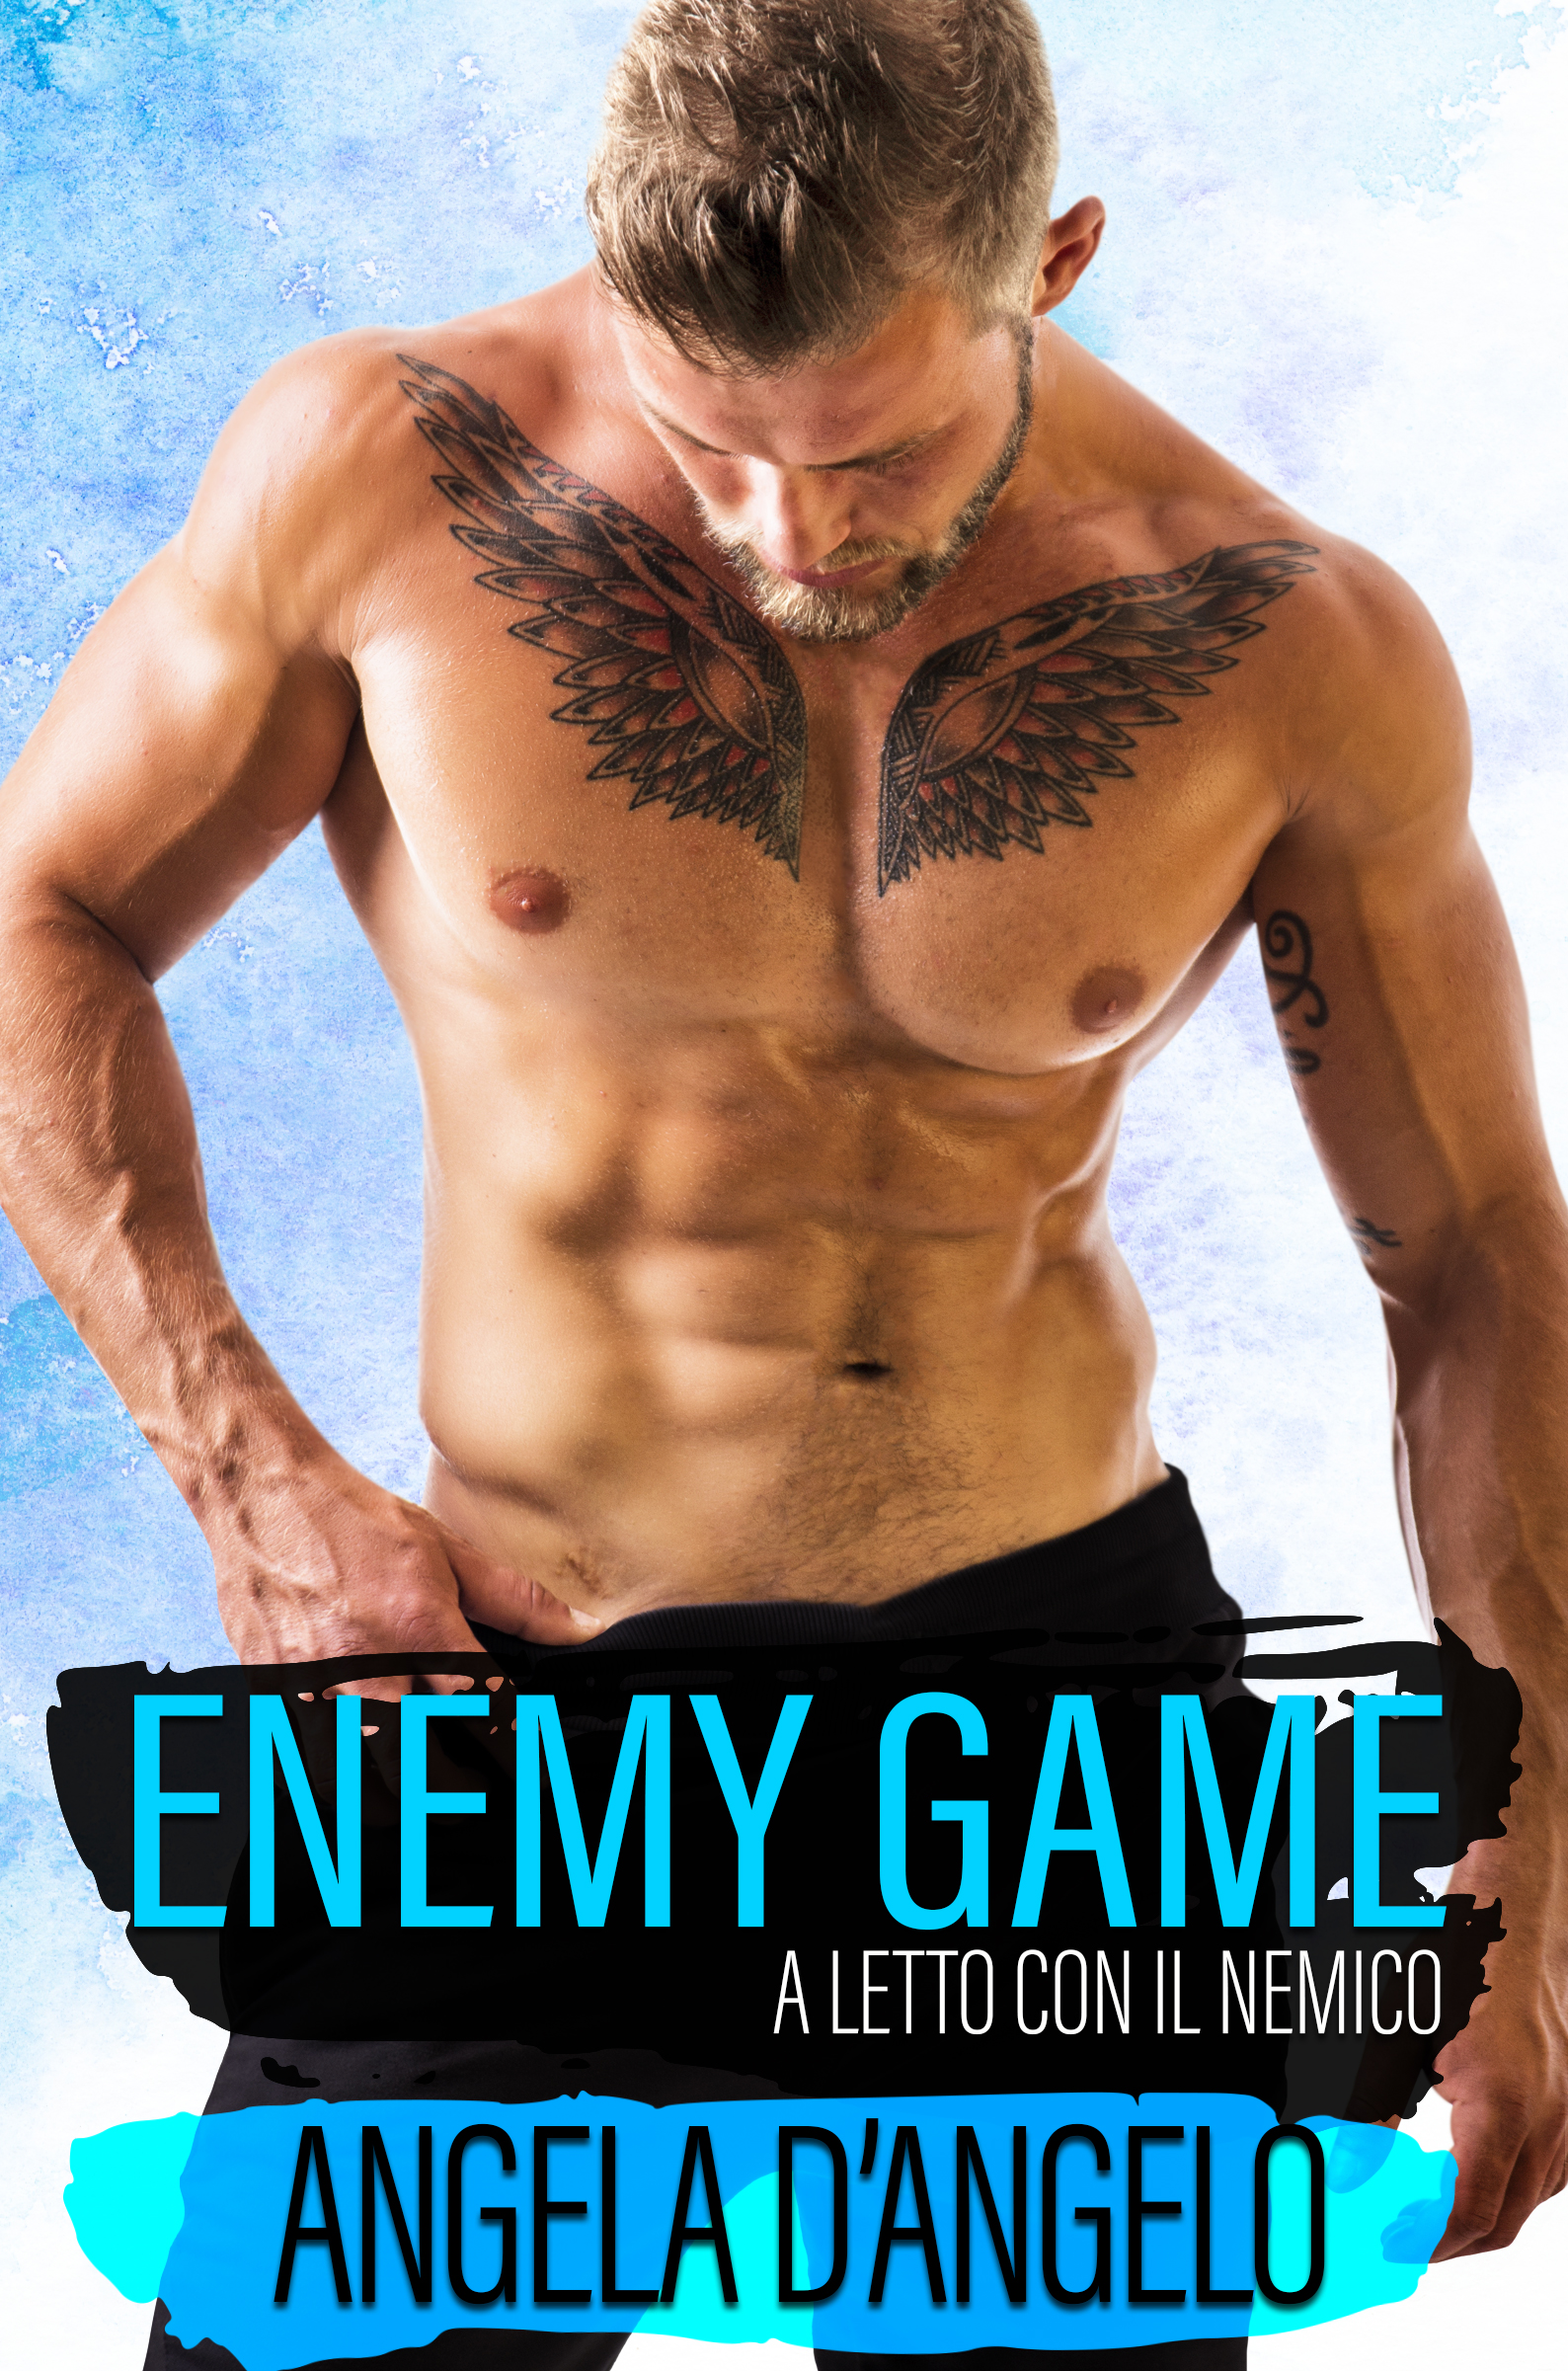 Enemy Game – A letto con il nemico